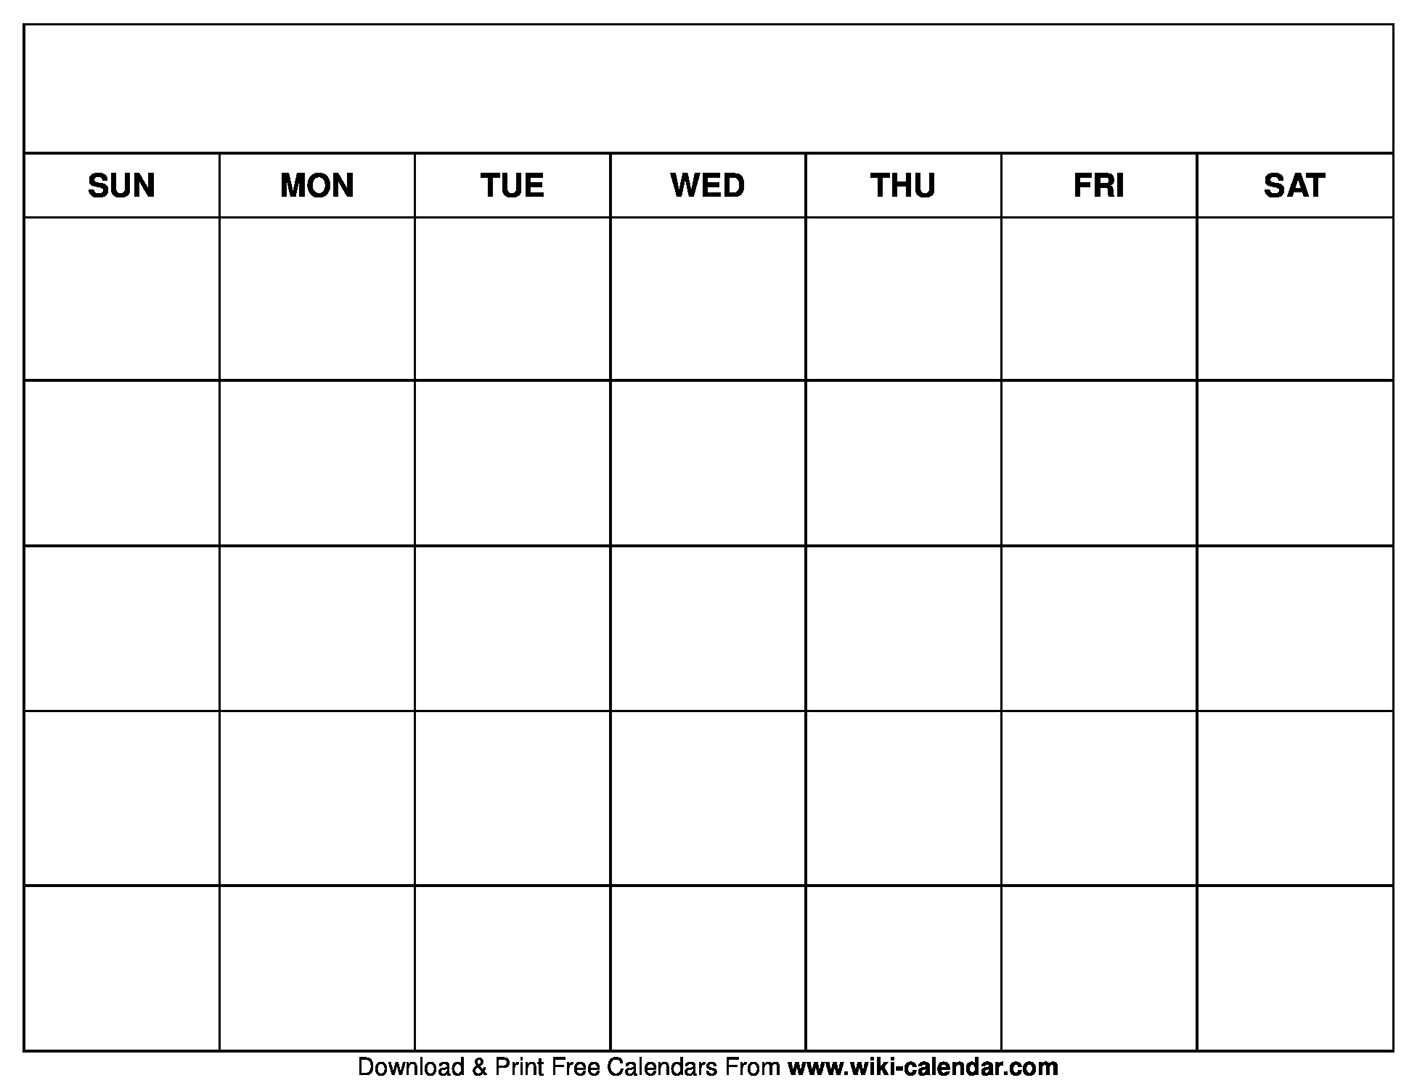 Blank Calendar To Fill In Online | Template Calendar Printable with regard to To Fill In Blankcalendar